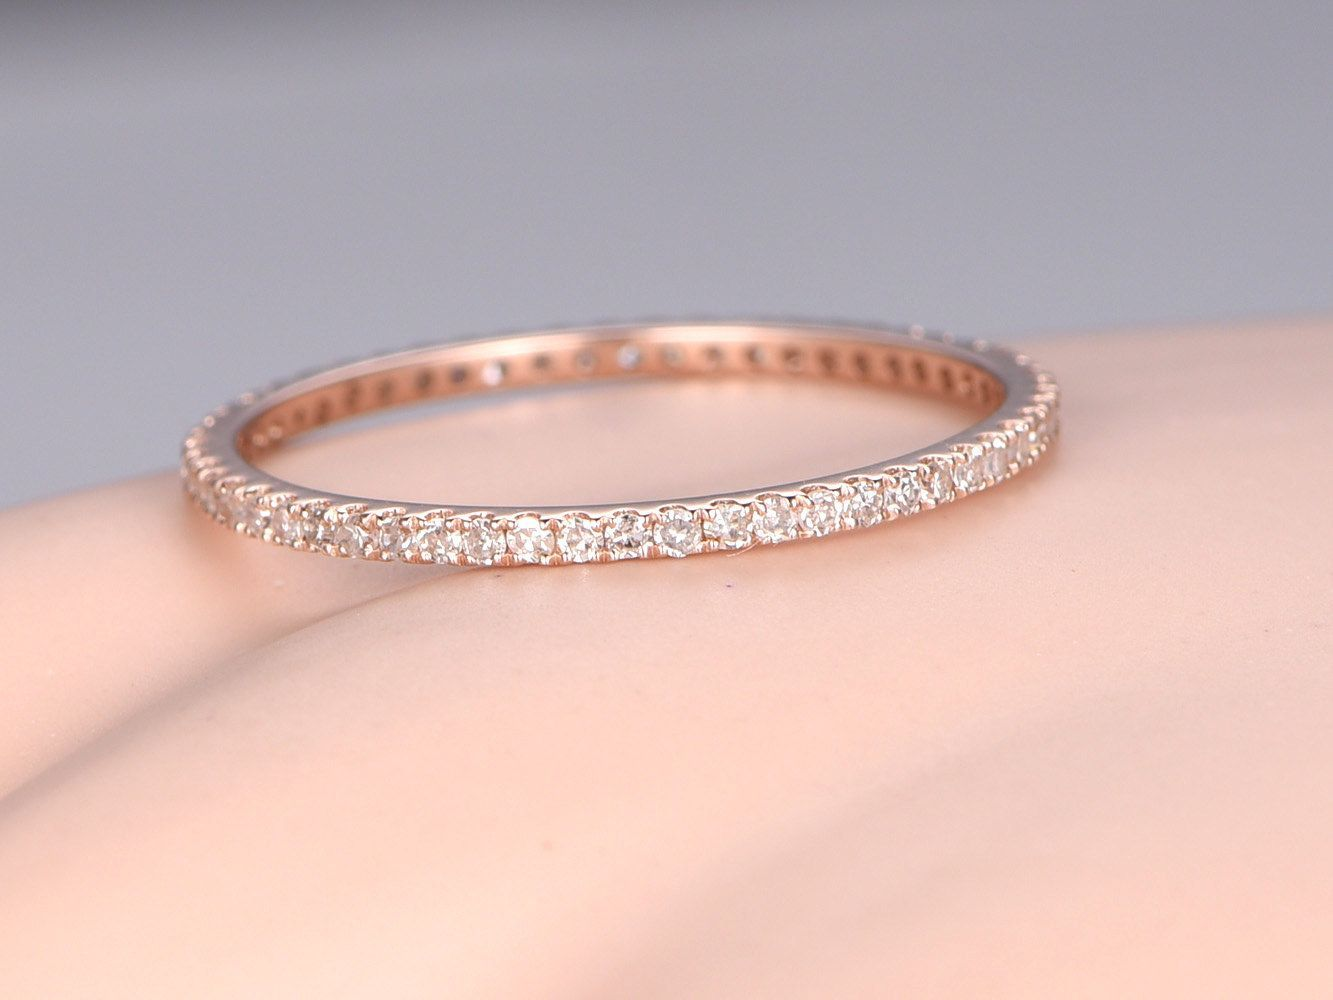 Petite French micro pave Diamond wedding band solid by PENNIjewel ...